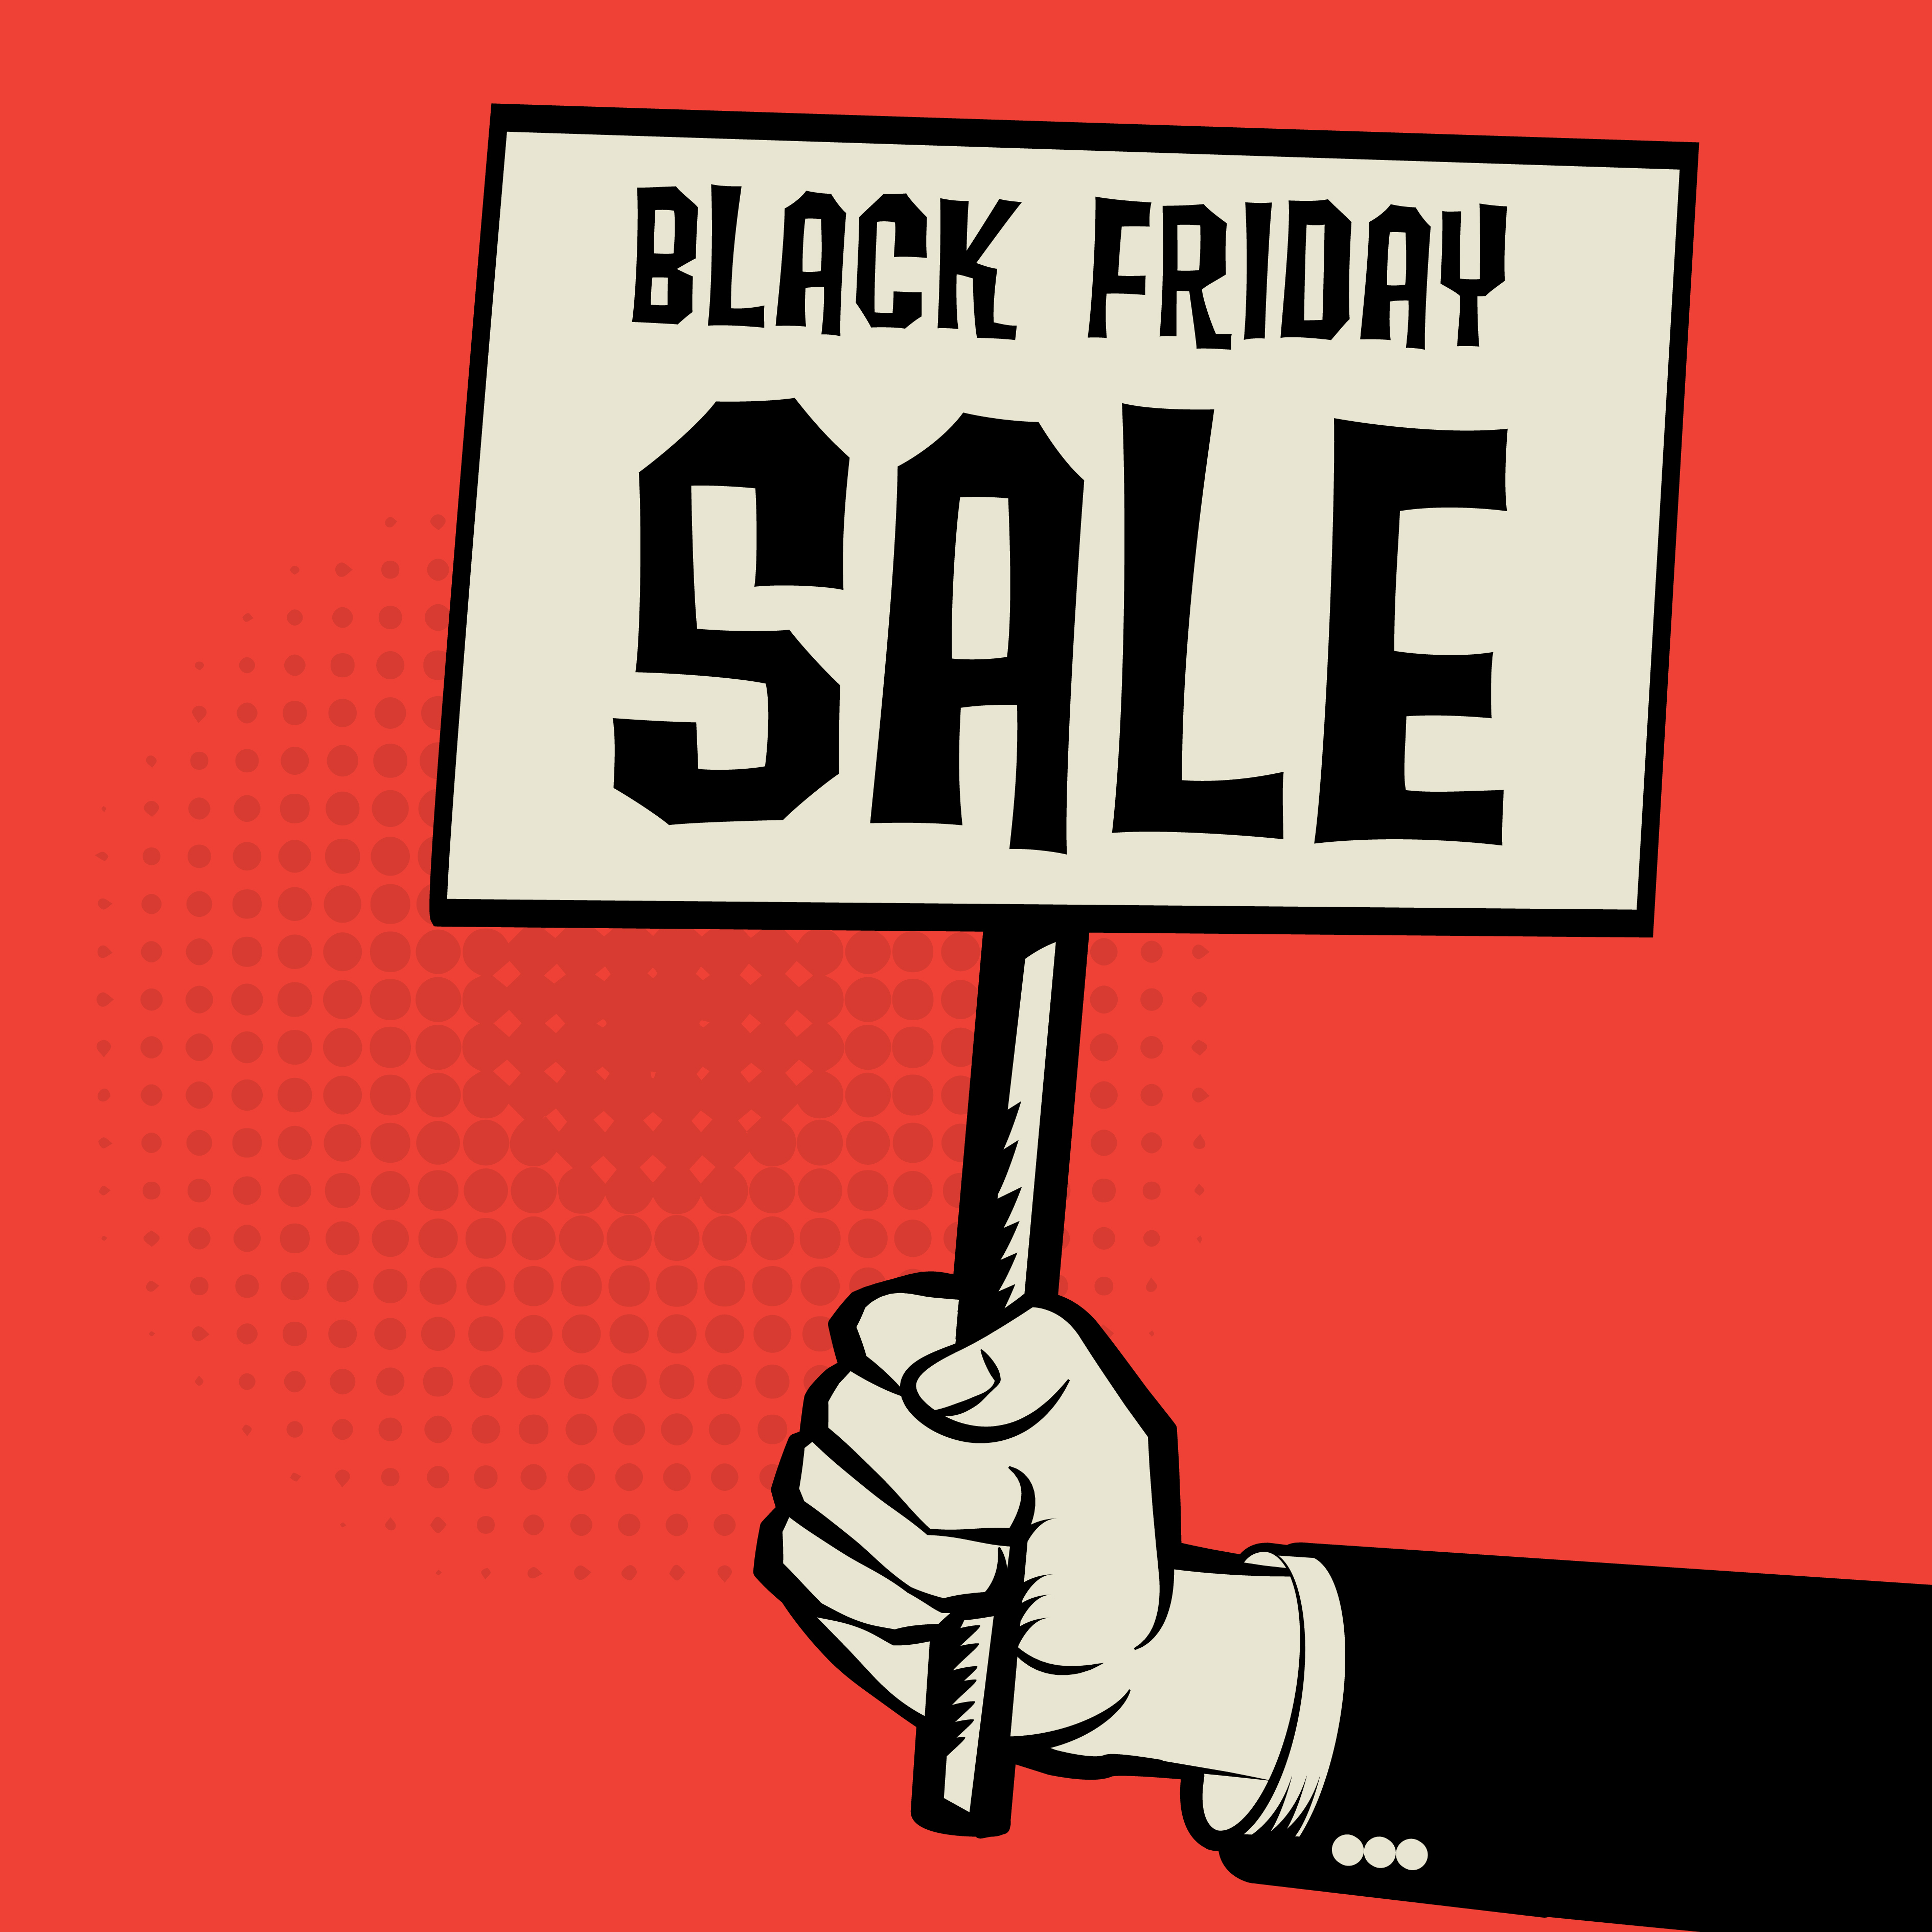 shutterstock-black-friday